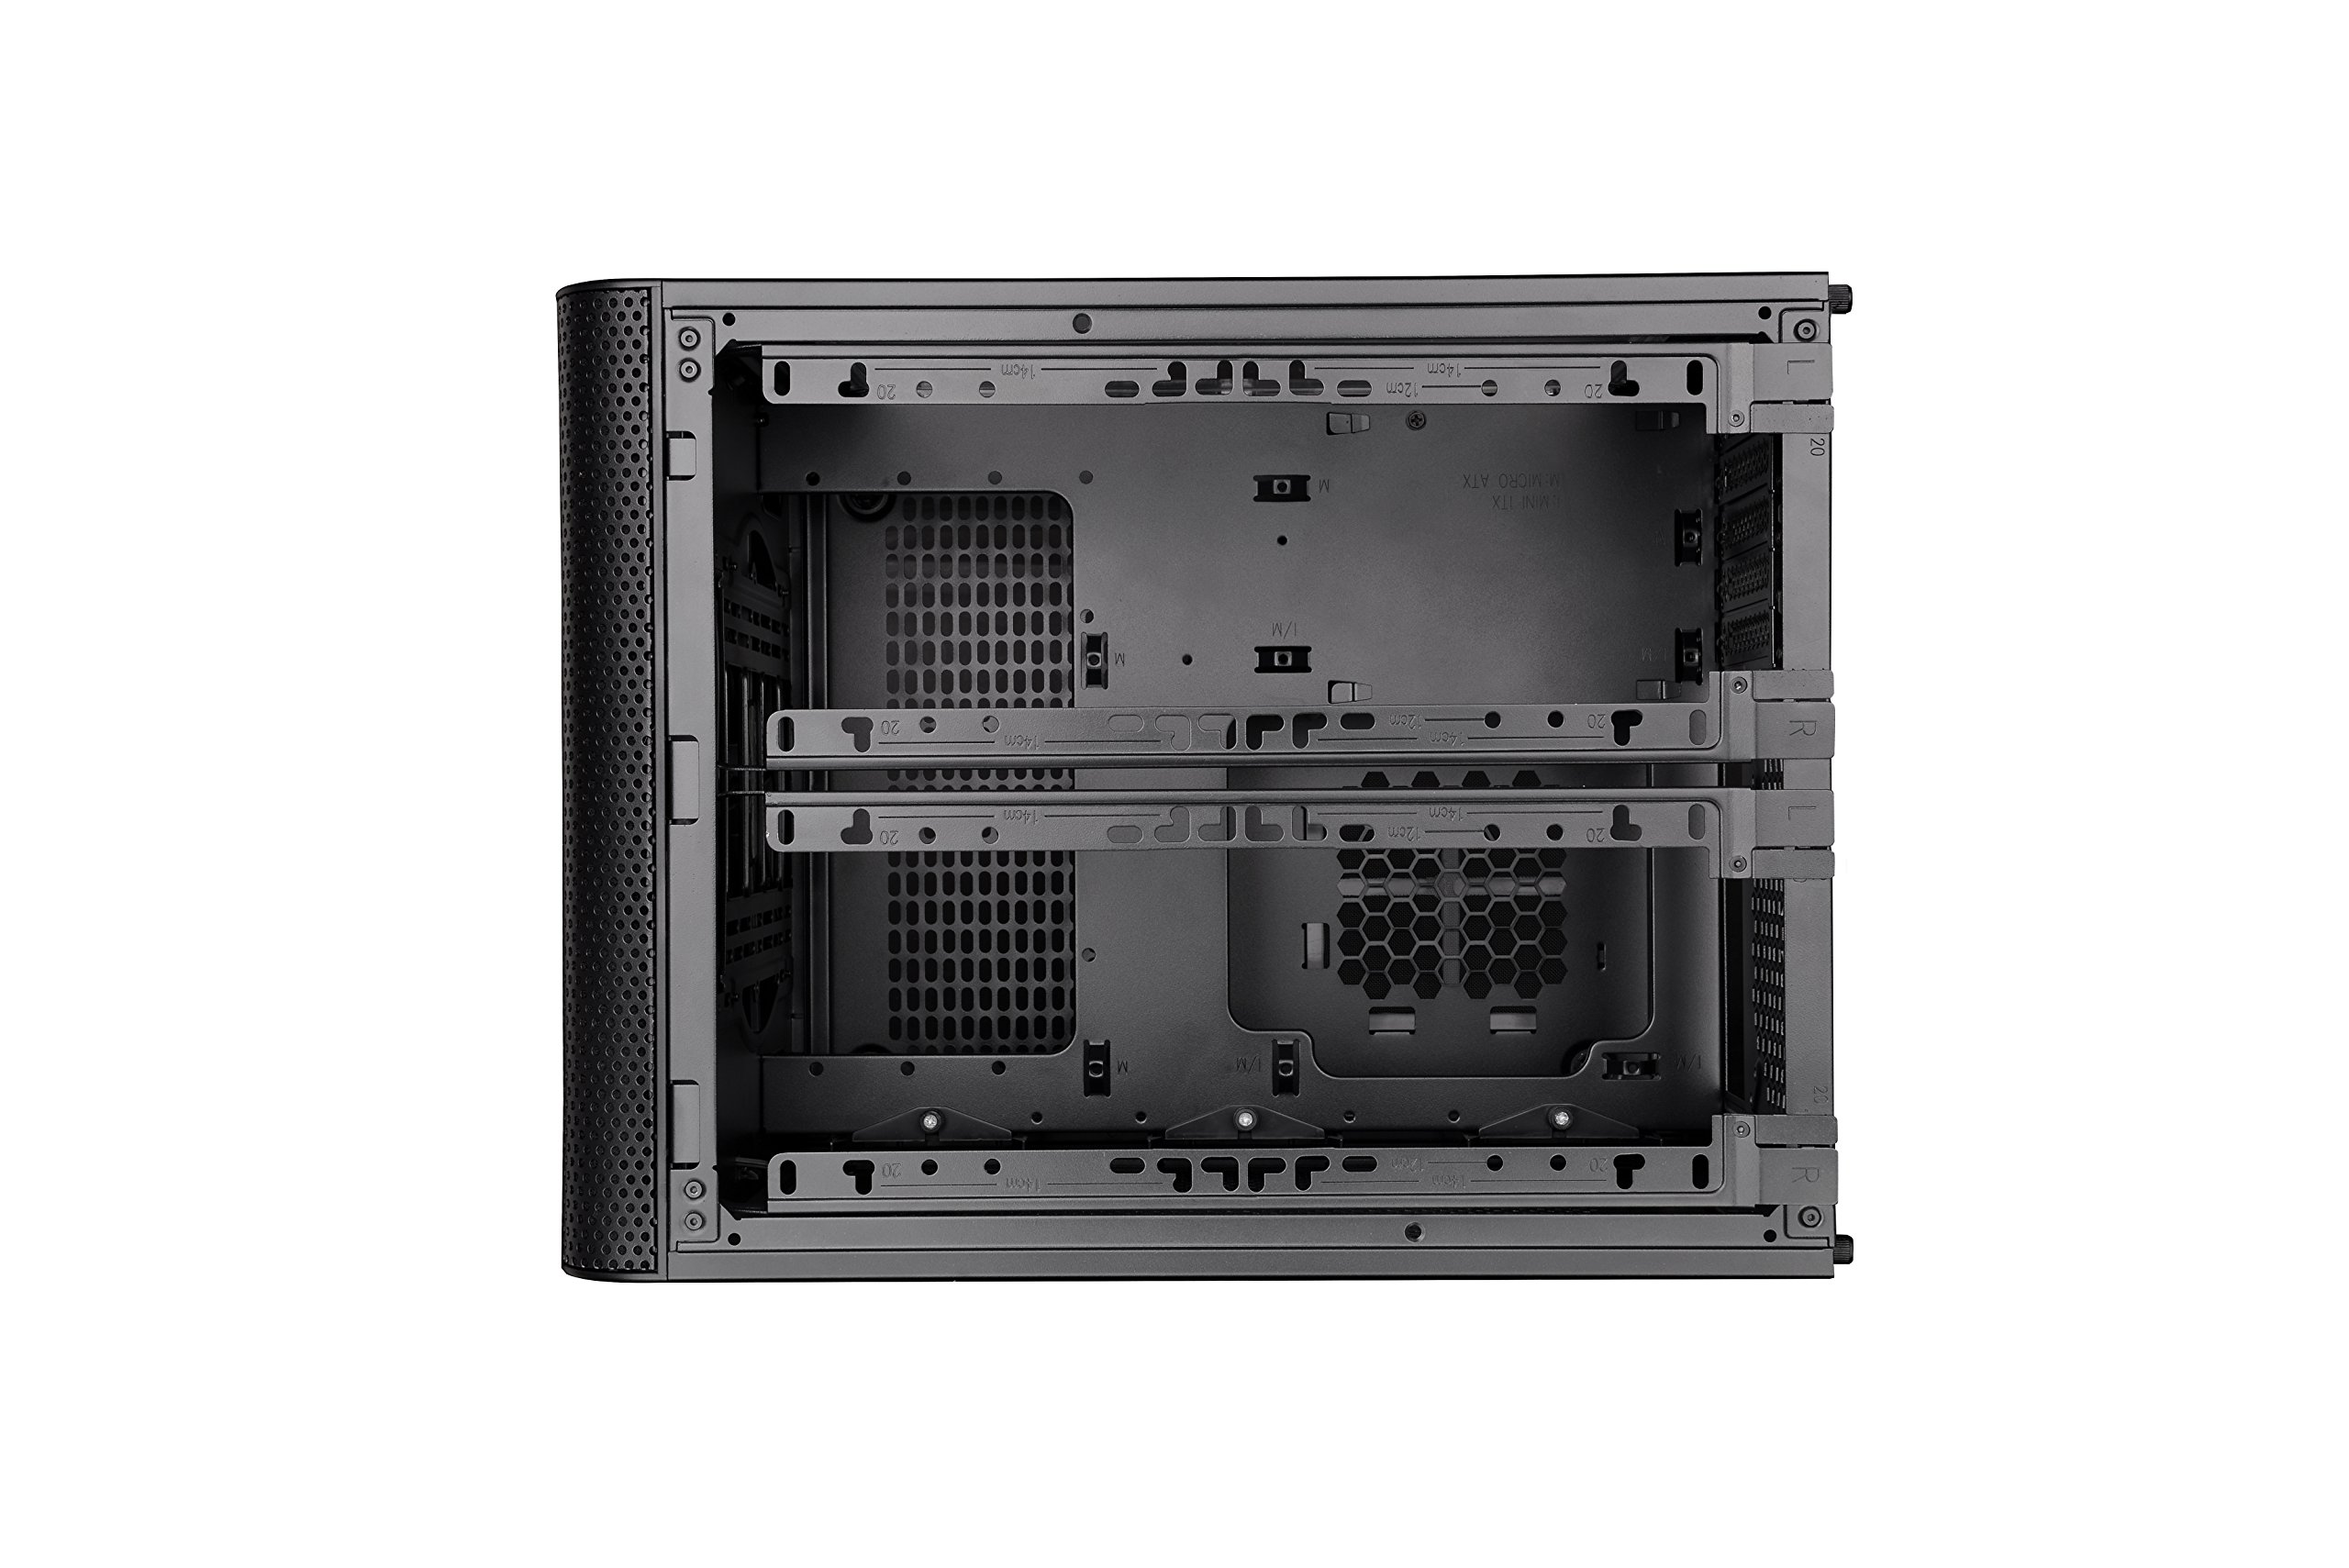 Thermaltake Core V21 SPCC Micro ATX, Mini ITX Cube Gaming Computer Case Chassis, Small Form Factor Builds, 200mm Front Fan Pre-installed, CA-1D5-00S1WN-00 by Thermaltake (Image #23)